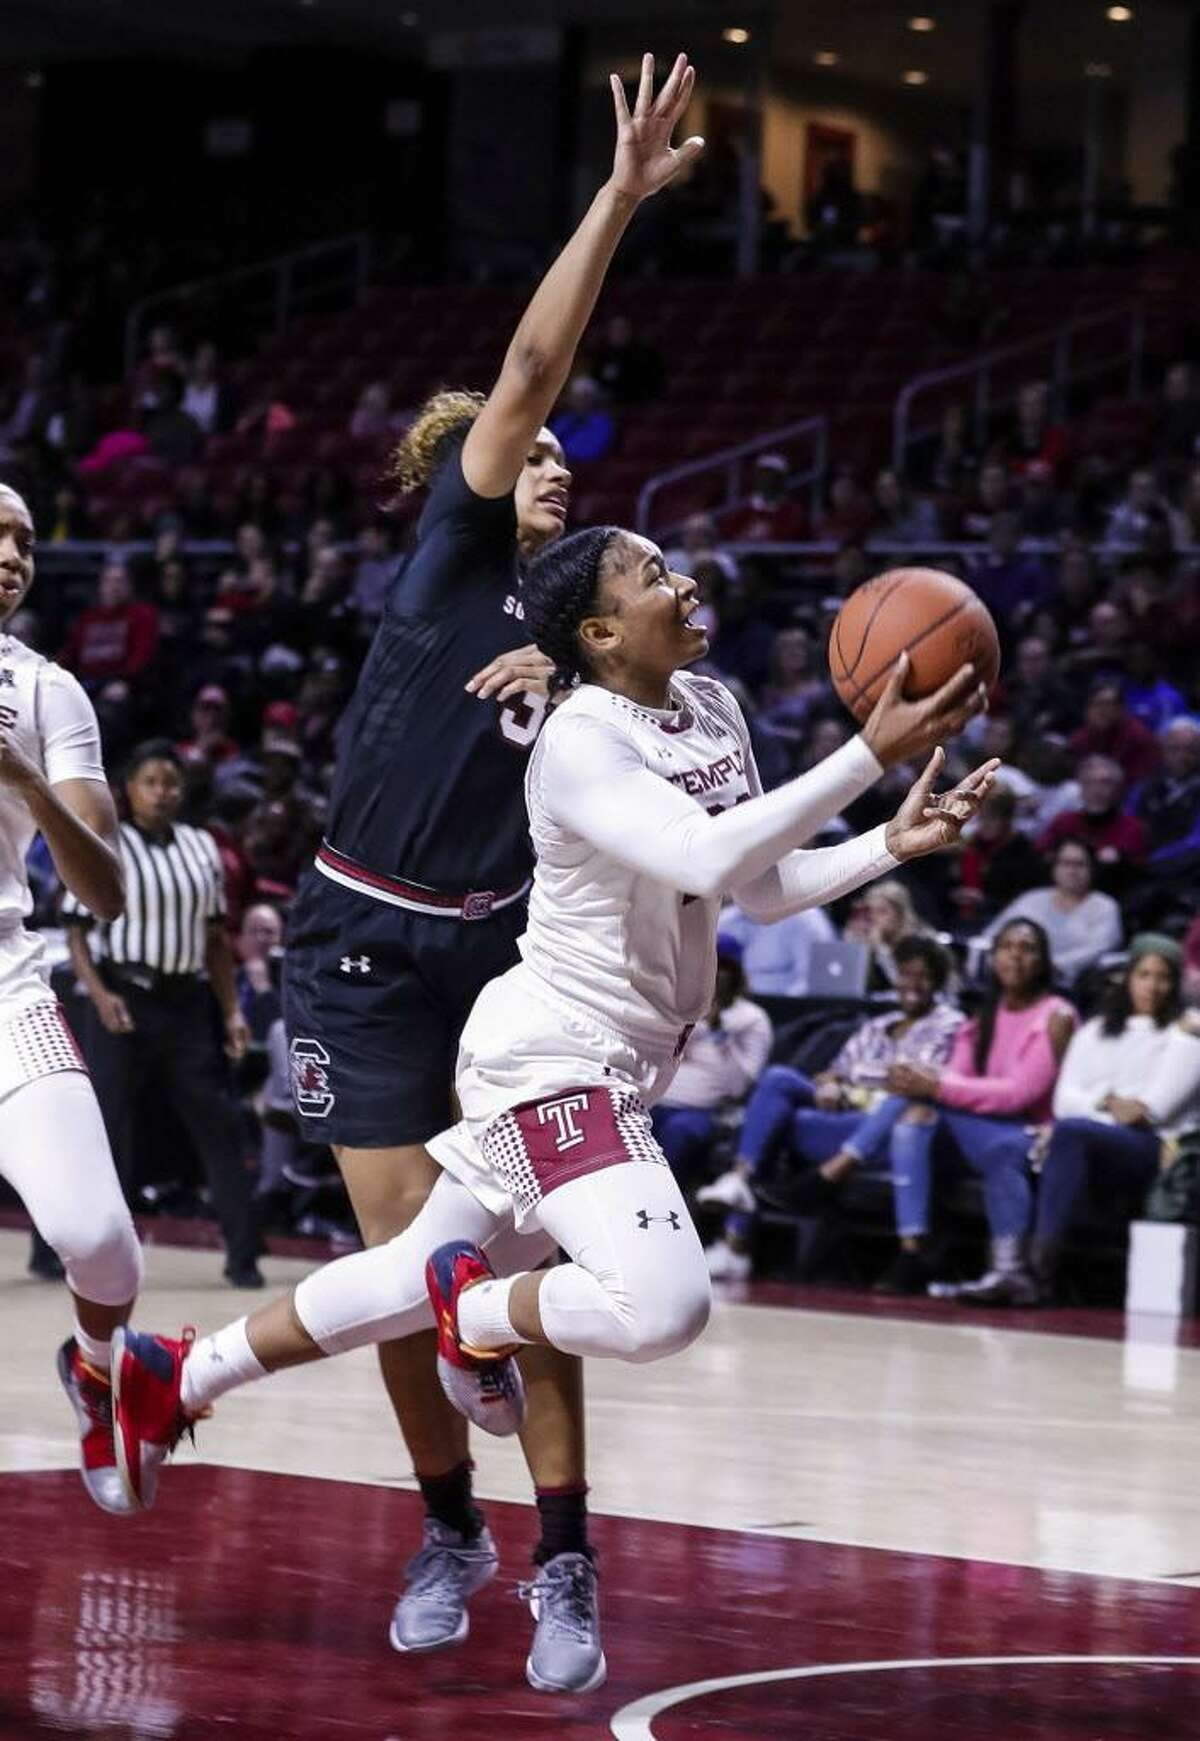 Temple's Tanaya Atkinson, right, goes up for the shot as she tries to get past South Carolina's Alexis Jennings during a Dec. 21 game in Philadelphia.